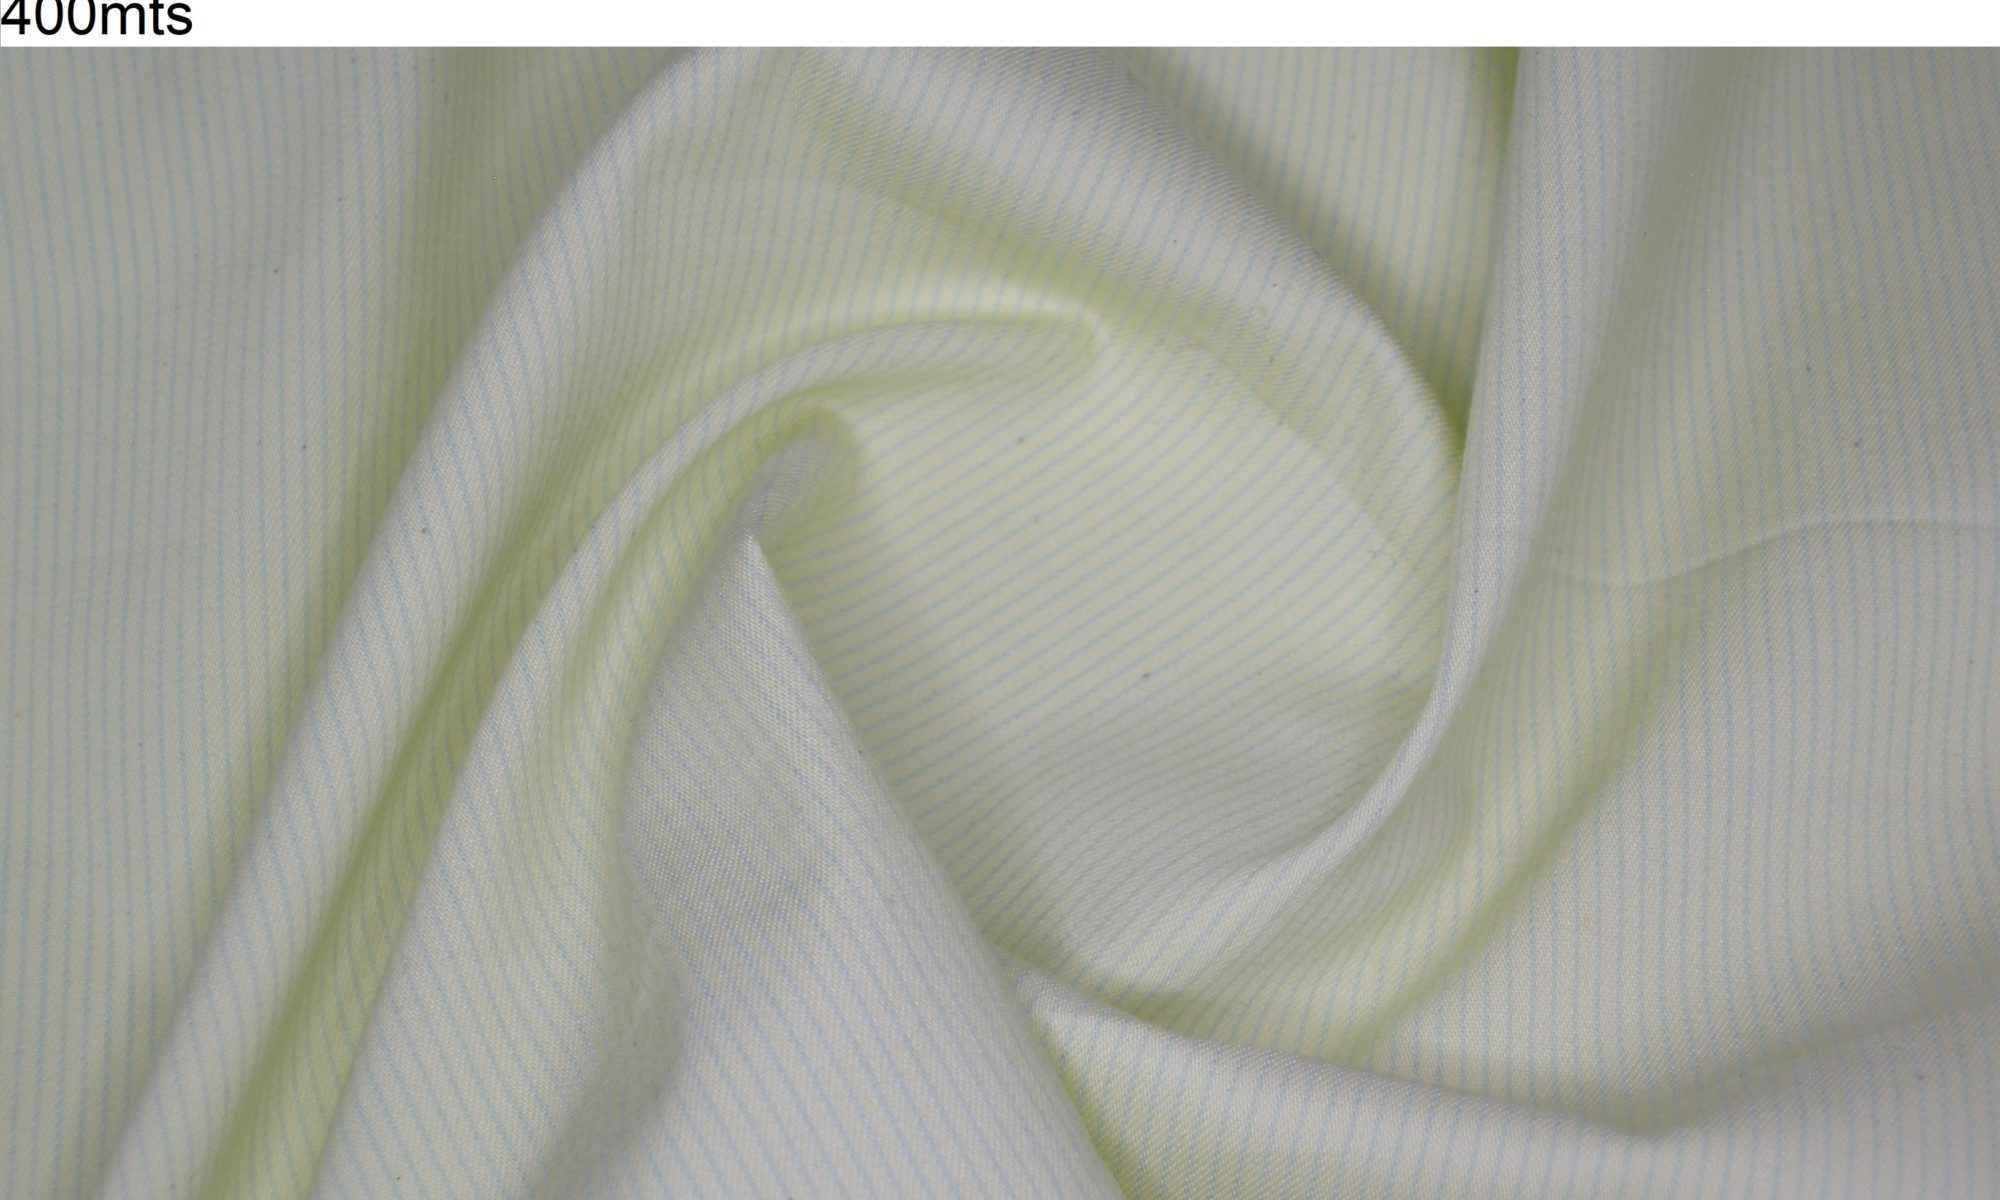 7720 yellow stretch filafil cotton popelin shirt fabric WIDTH cm140 WEIGHT gr260 - gr185 square meter - COMPOSITION 70 Cotton 30 Elastan - 400mts